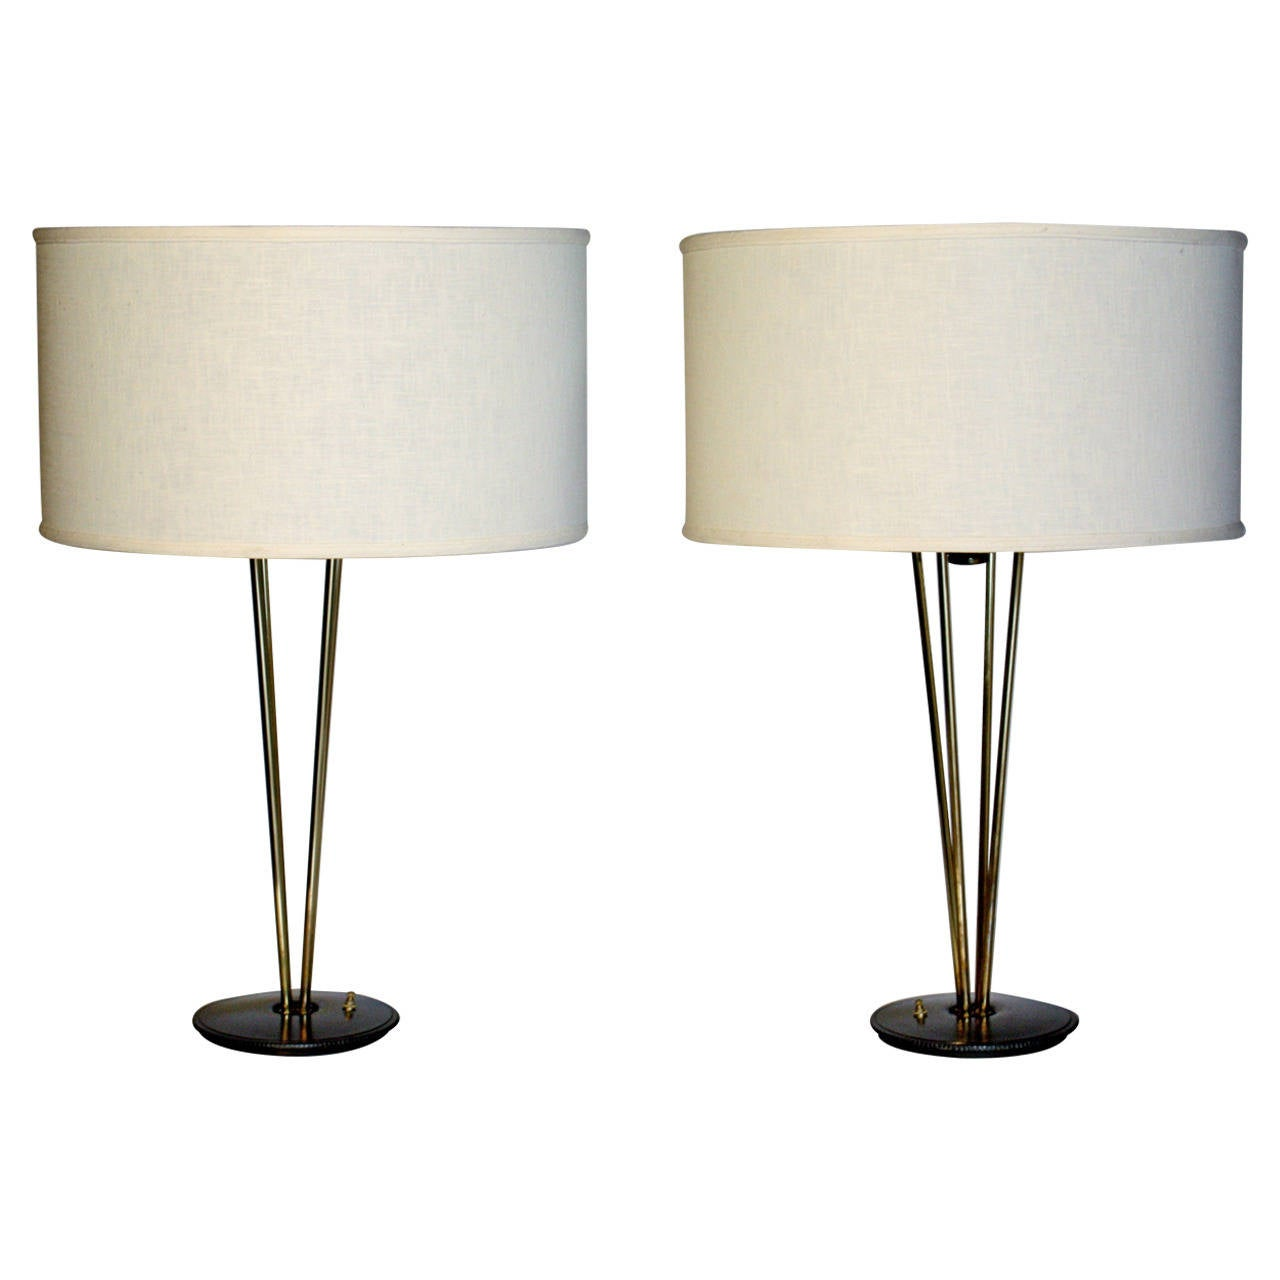 Gerald thurston stiffel lamps for sale at 1stdibs gerald thurston stiffel lamps 1 geotapseo Image collections